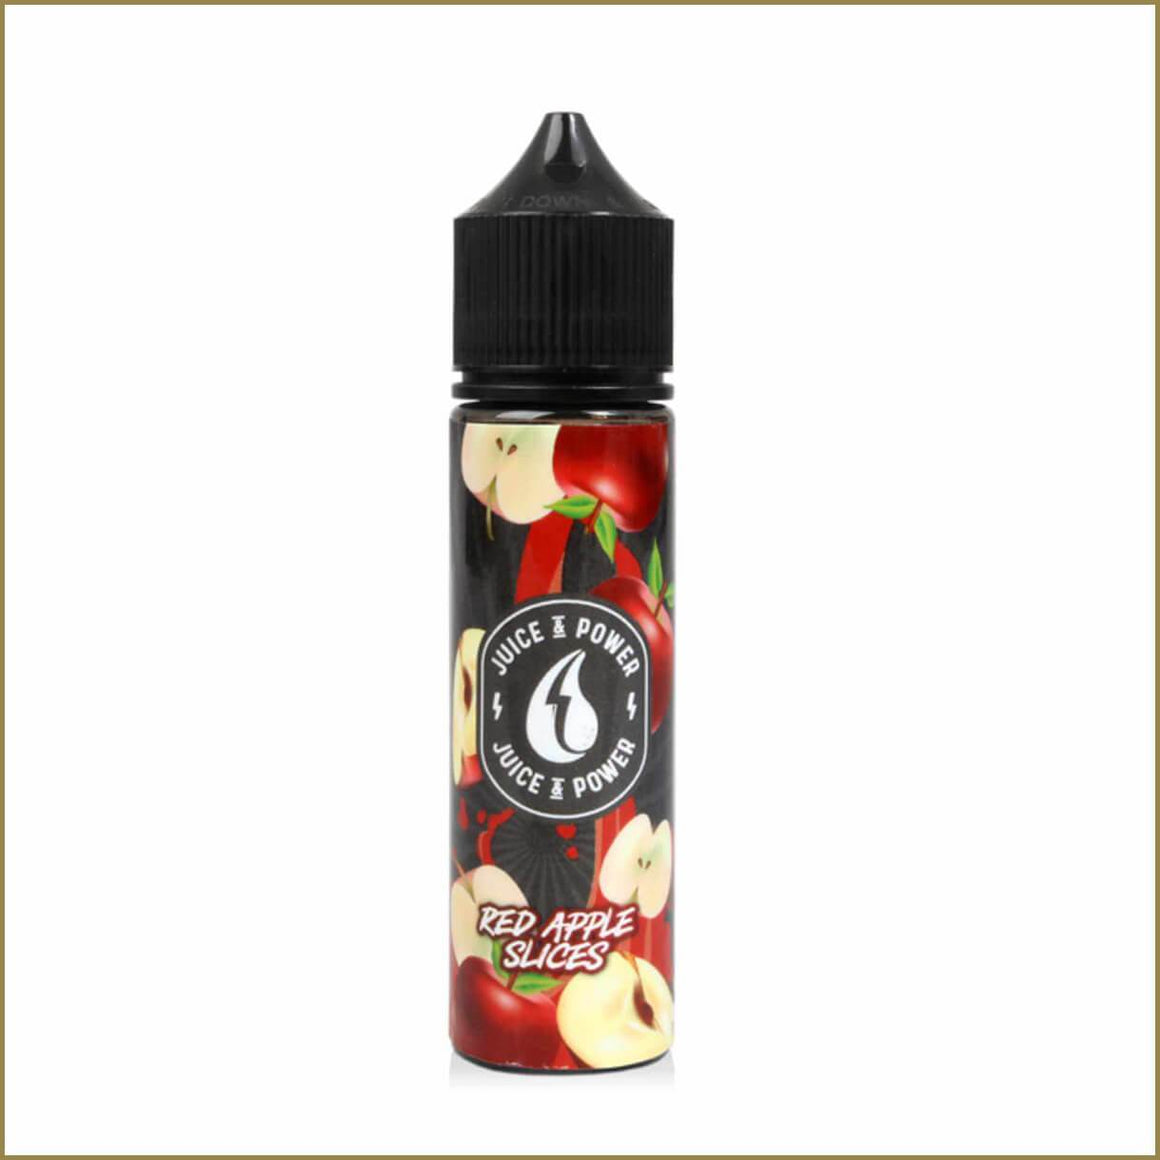 Juice & Power Red Apple Slices 50ml